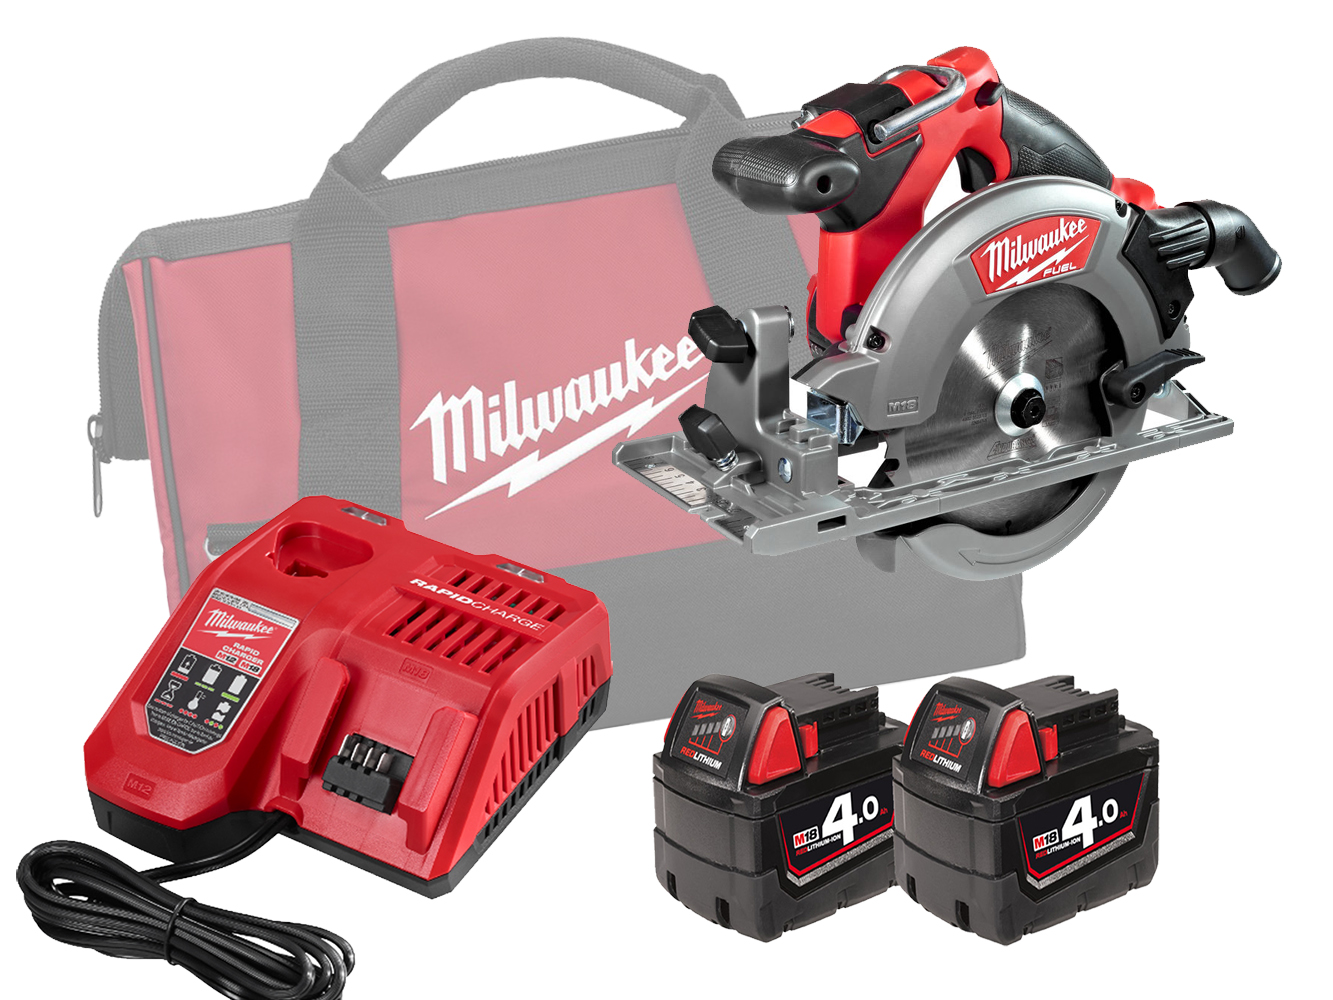 Milwaukee M18CCS55 18V Fuel 165mm (55mm) Circular Saw for Wood and Plastics - 4.0Ah Pack